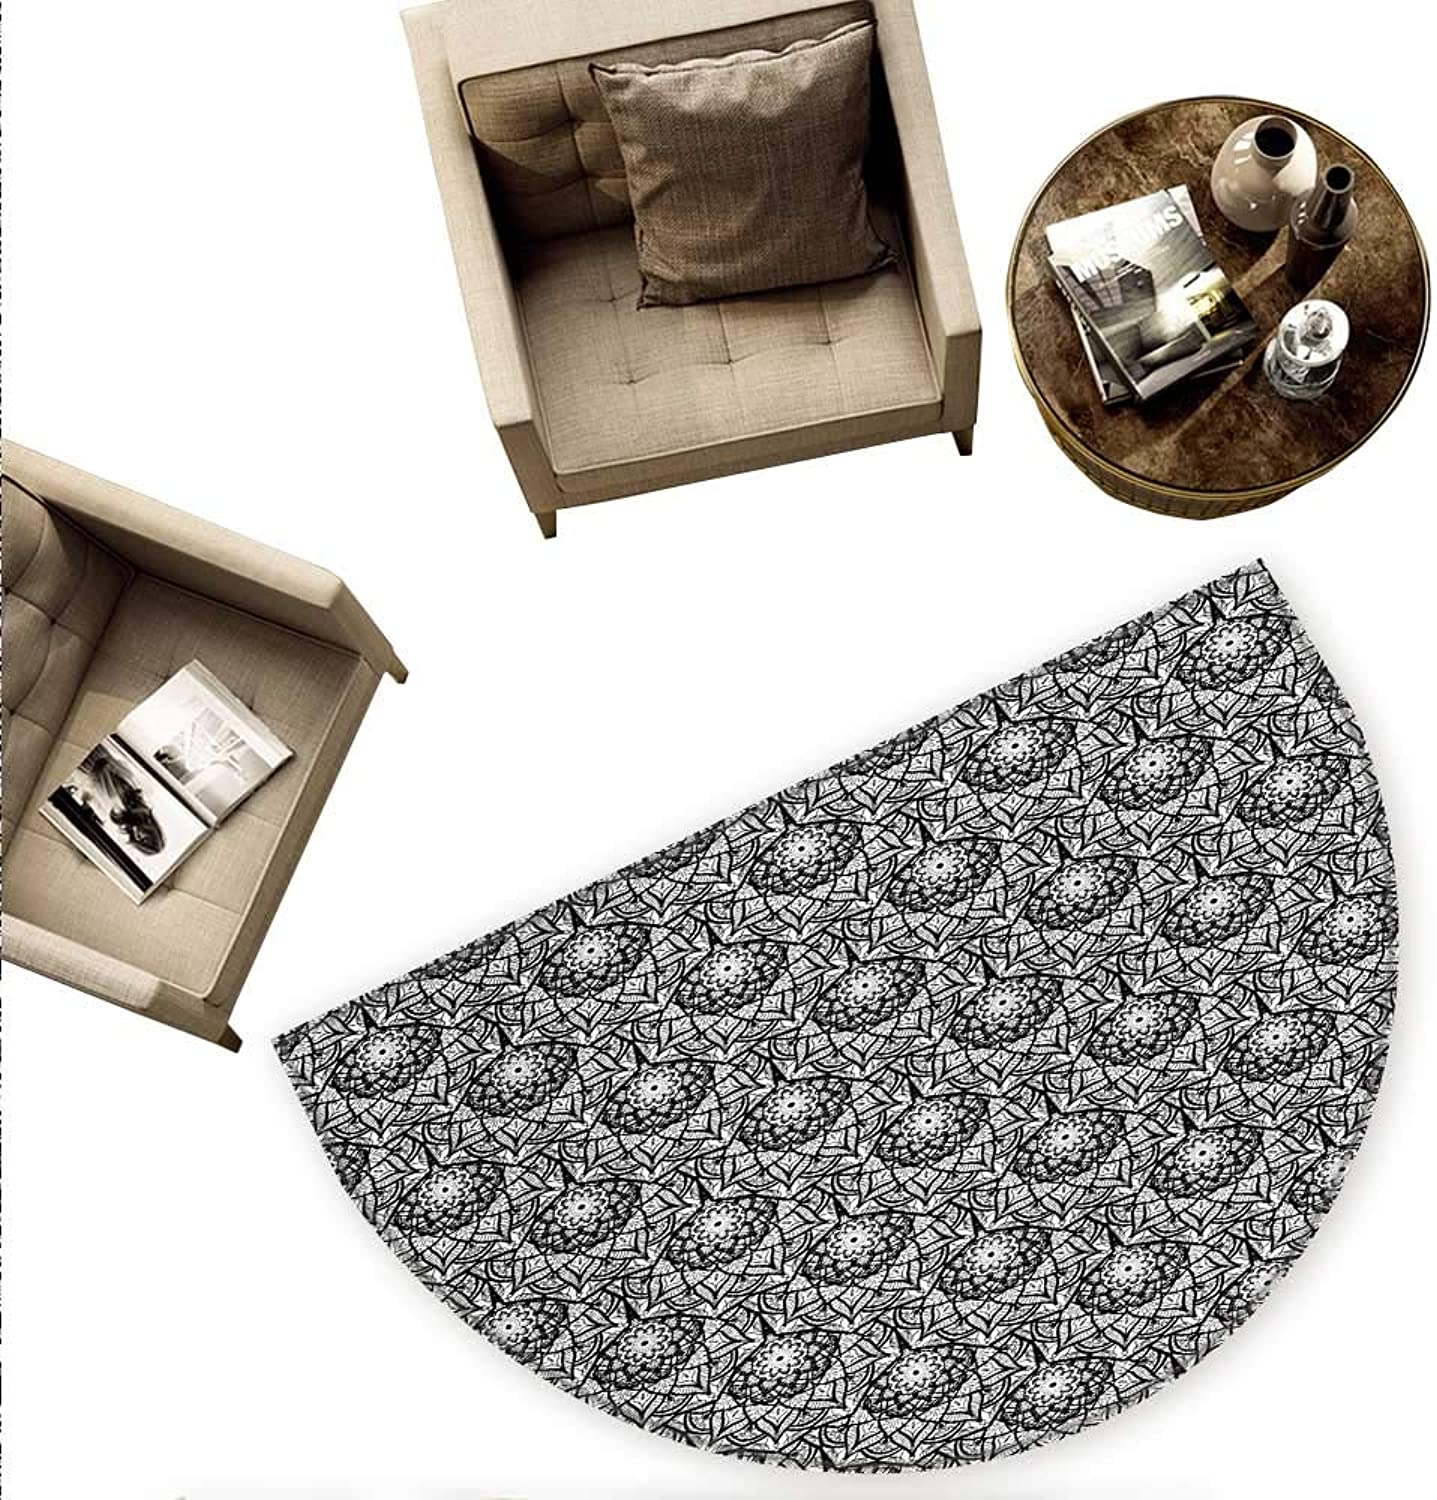 Black and White Semicircular Cushion Hand Drawn Flower Pattern with Oriental Inspirations Lace Style Petals Entry Door Mat H 78.7  xD 118.1  Black White